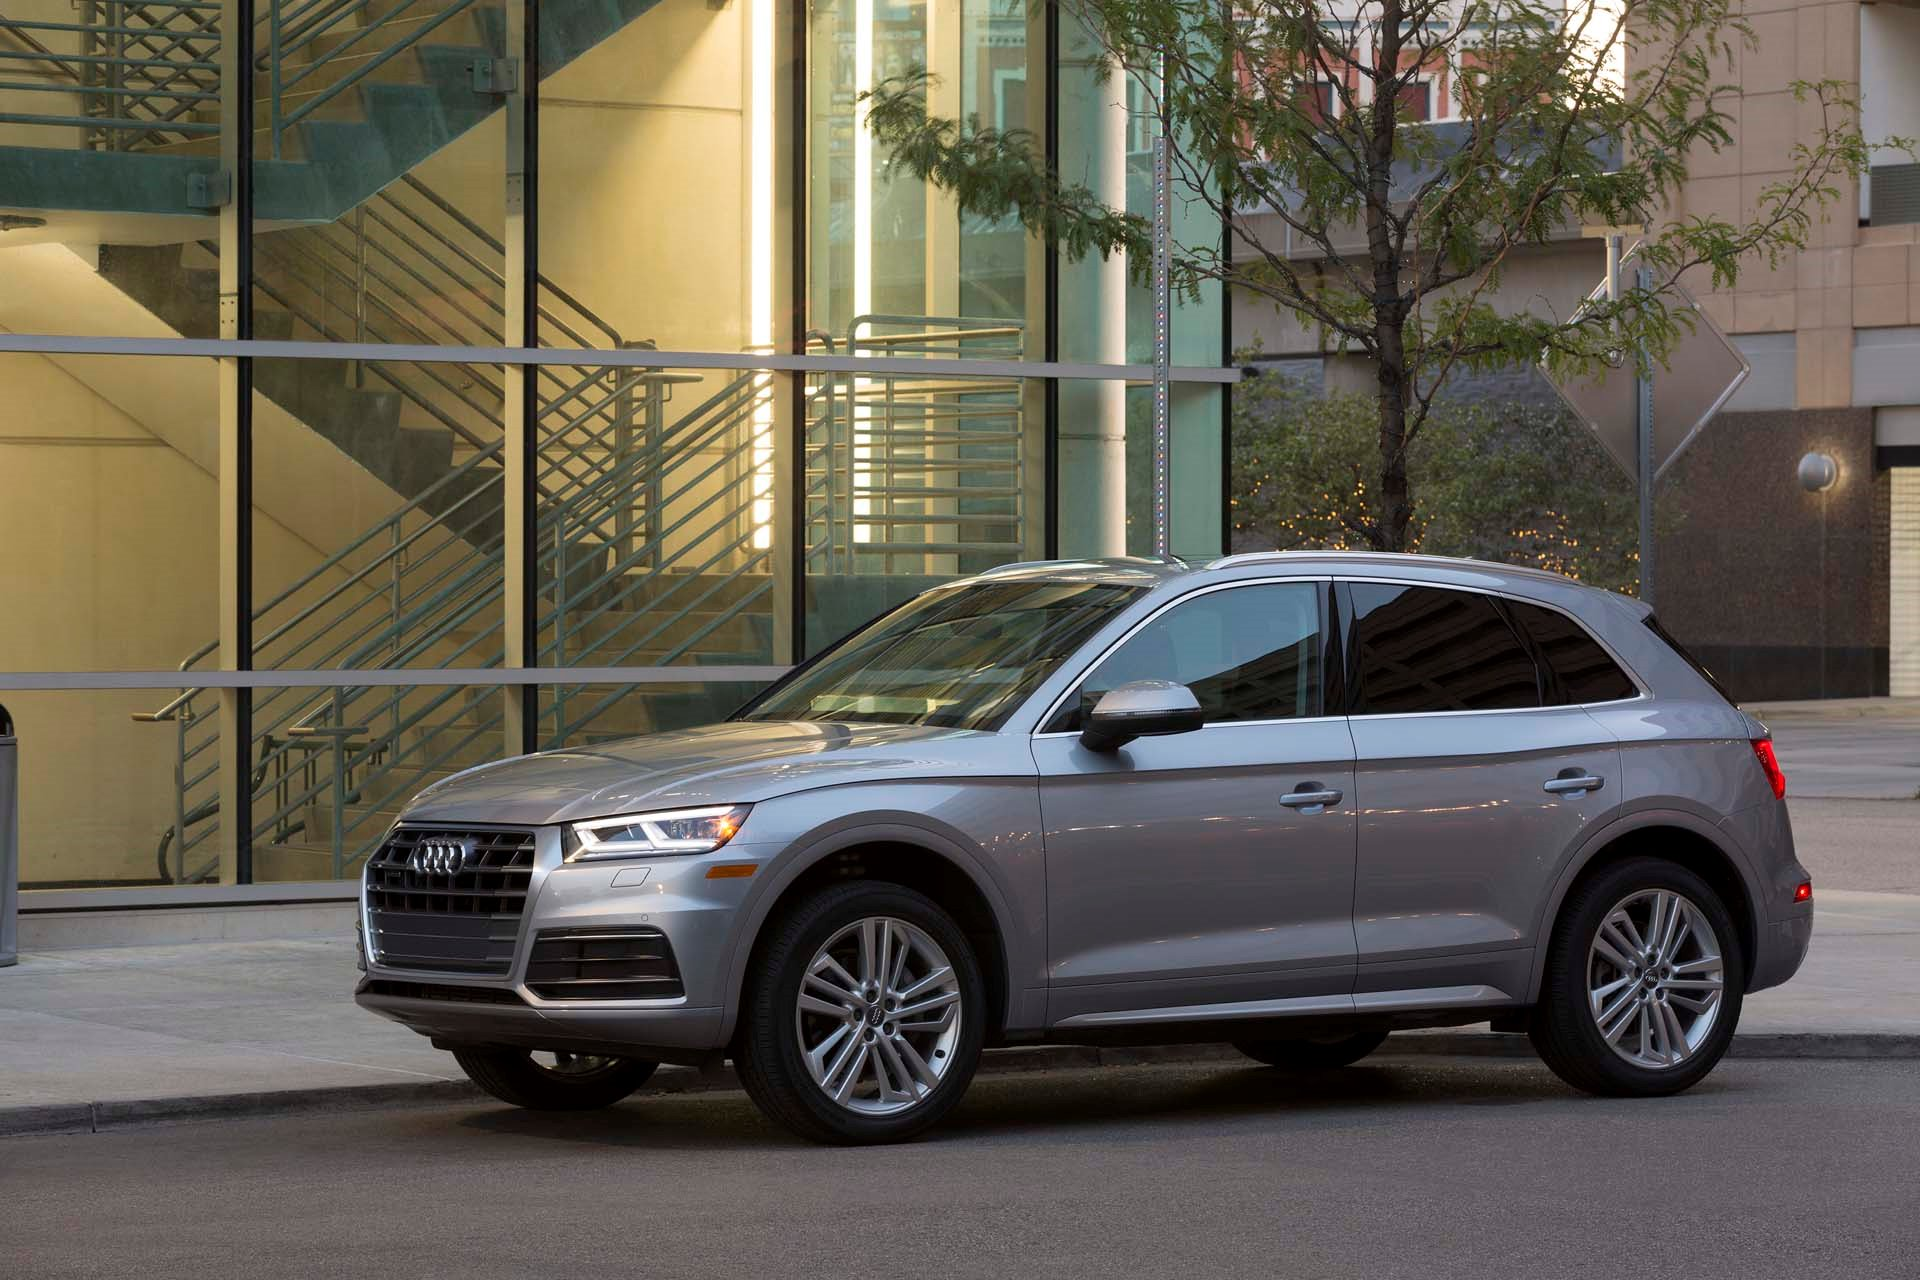 New 2019 Audi Q5 2.0T quattro Premium Plus 2.0T quattro Premium Plus for sale $49,950 at M and V Leasing in Brooklyn NY 11223 1